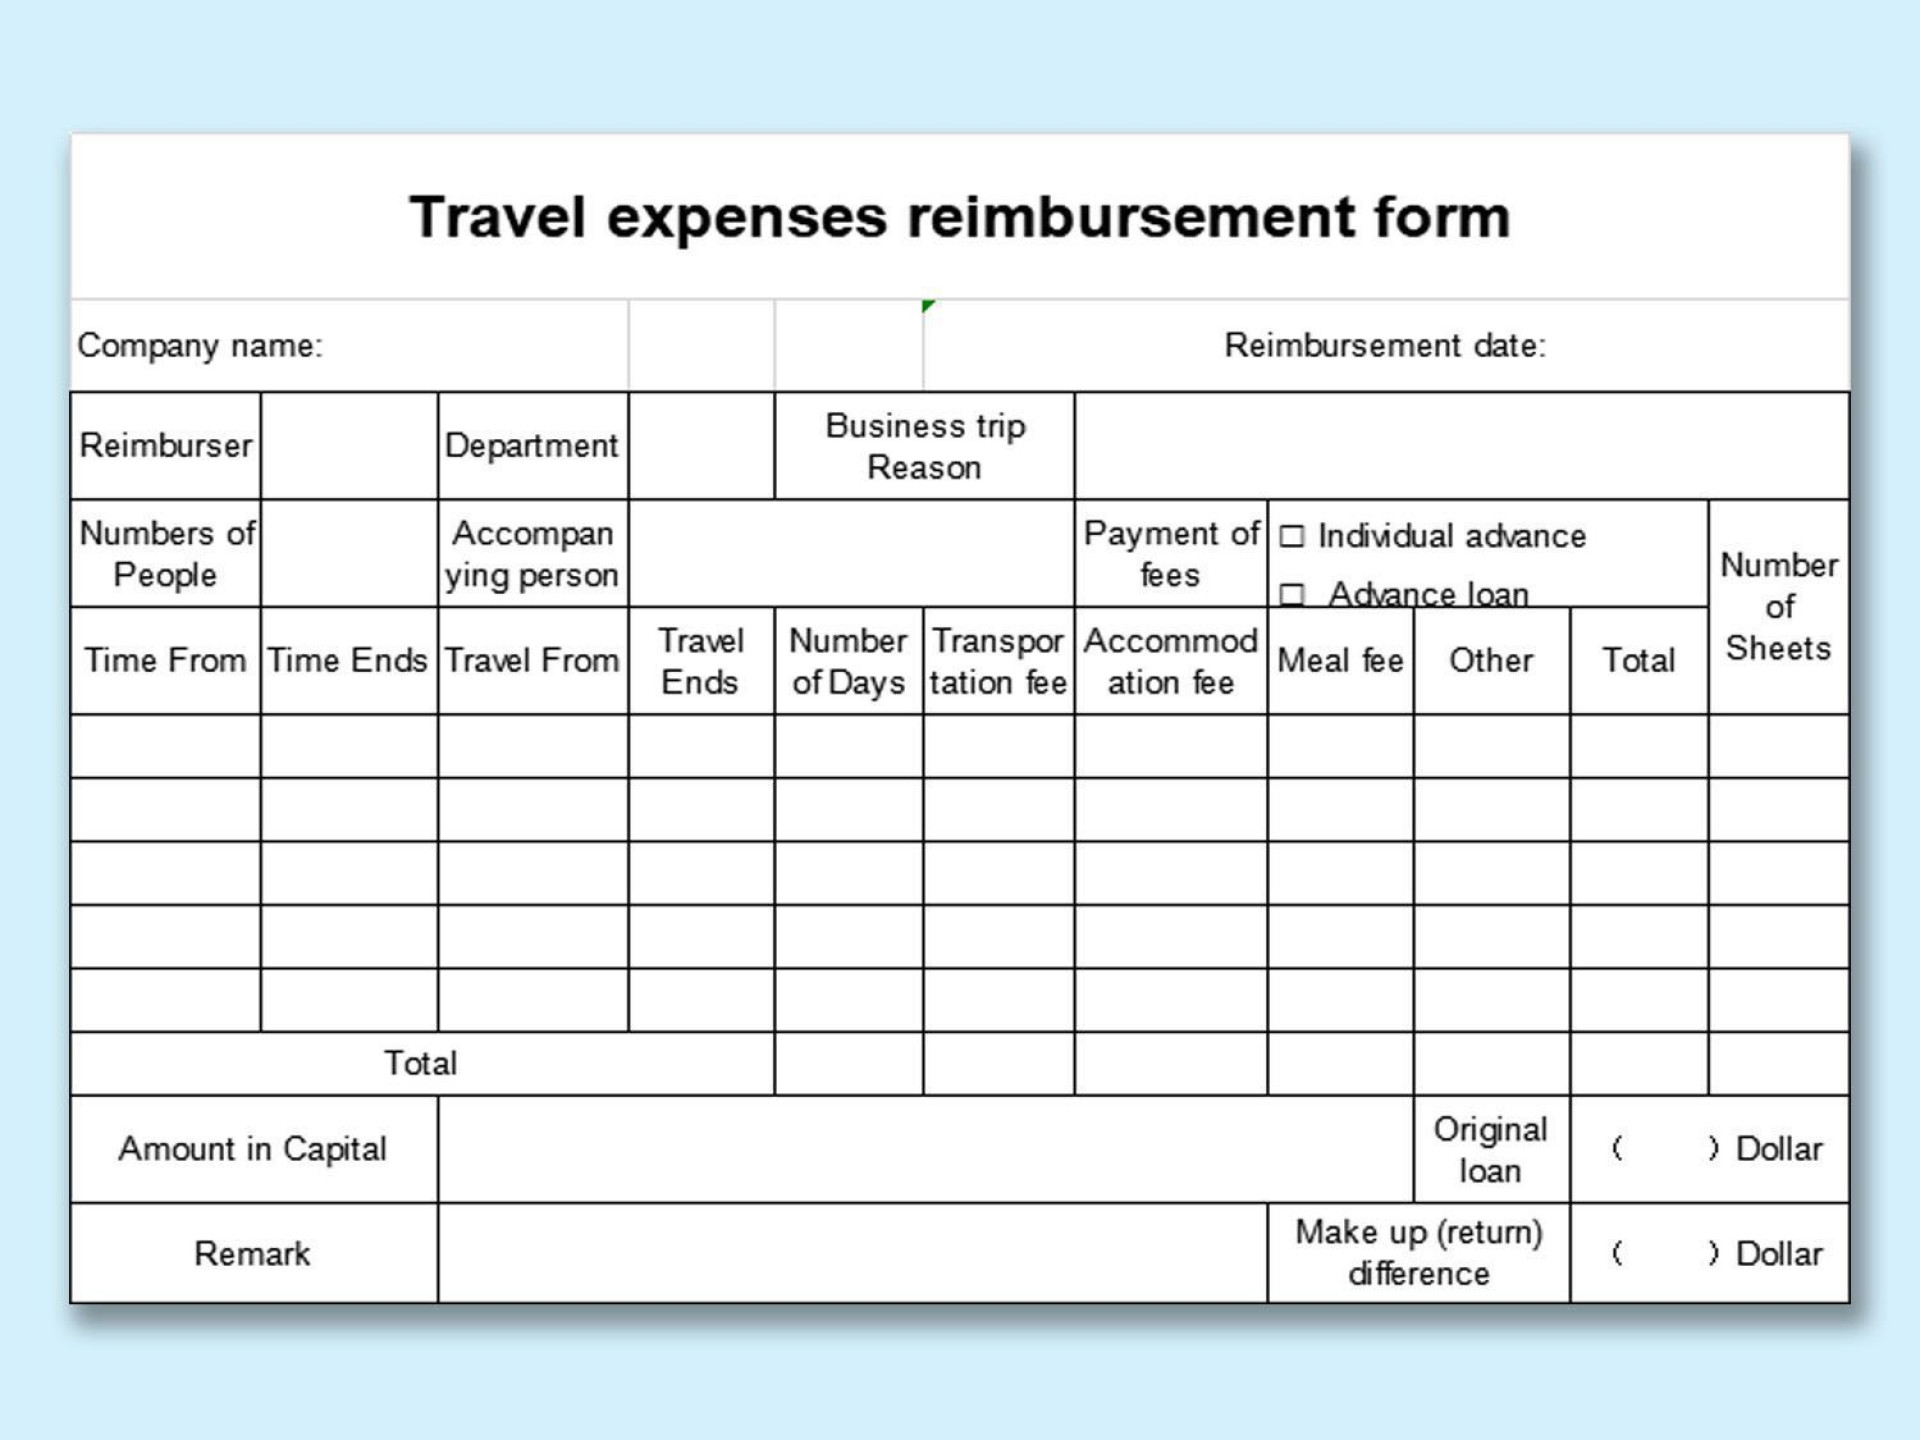 007 Shocking Excel Busines Travel Expense Template Image 1920